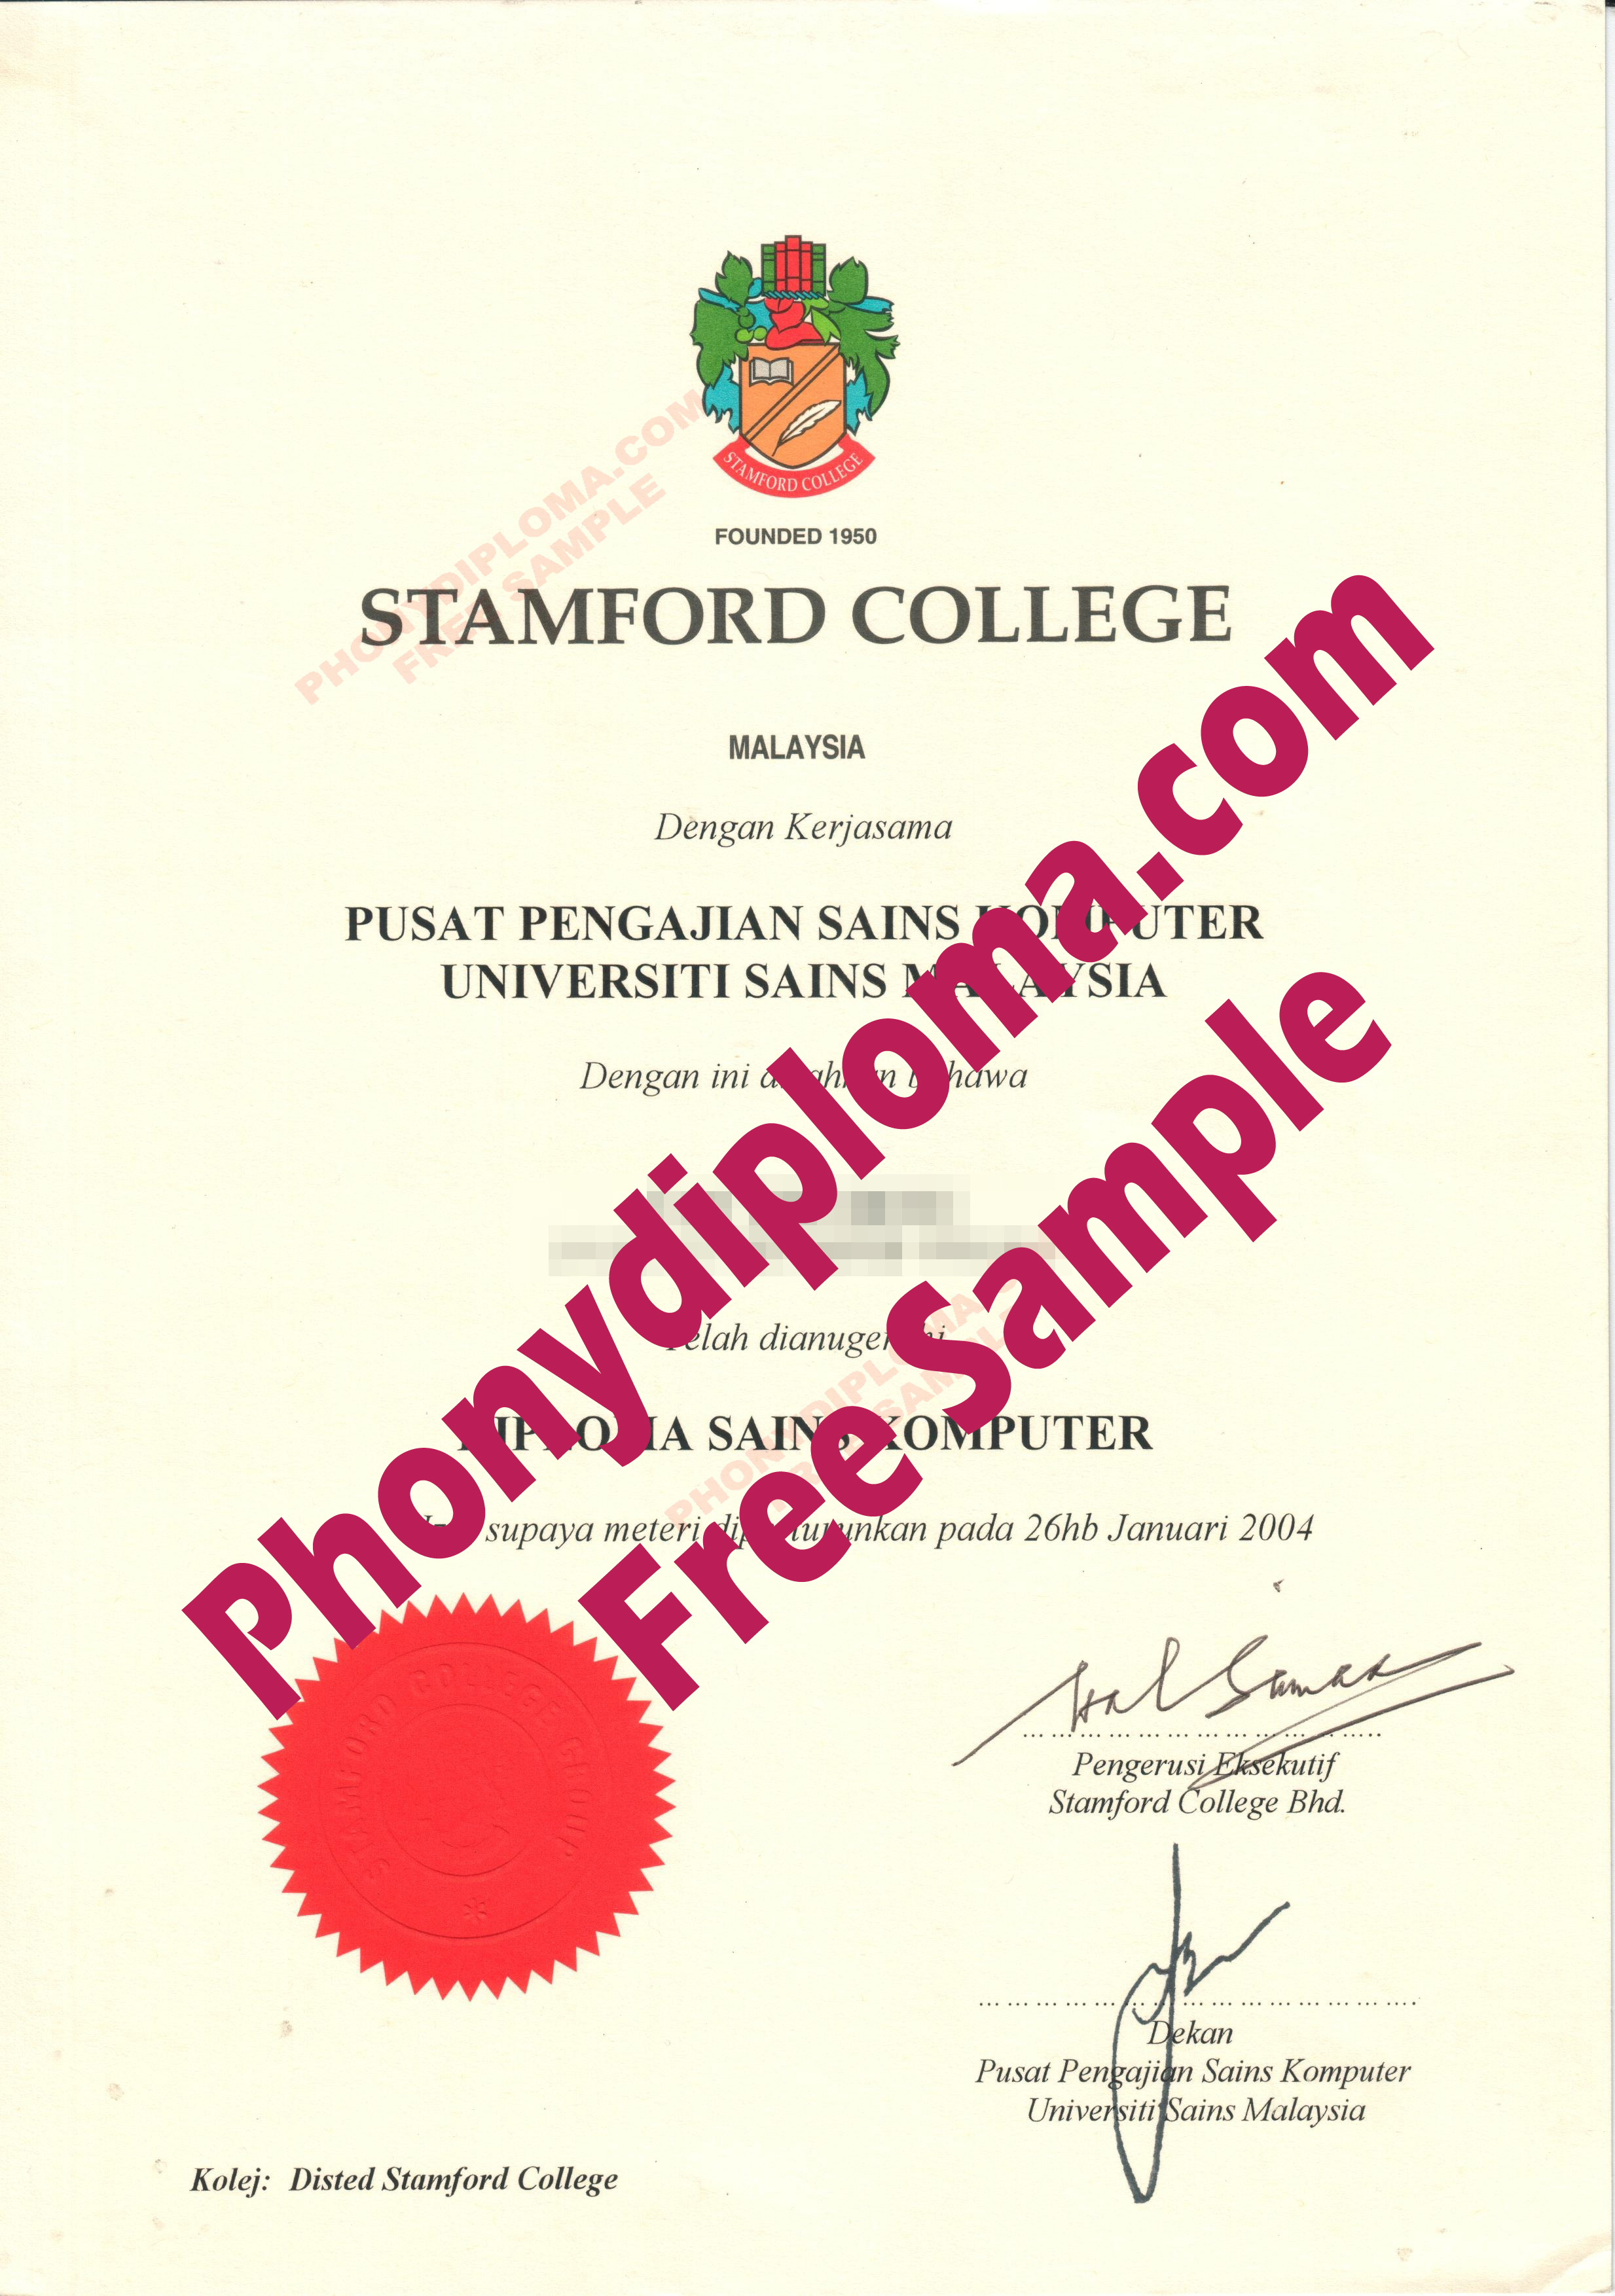 Stamford College Singapore Free Sample From Phonydiploma